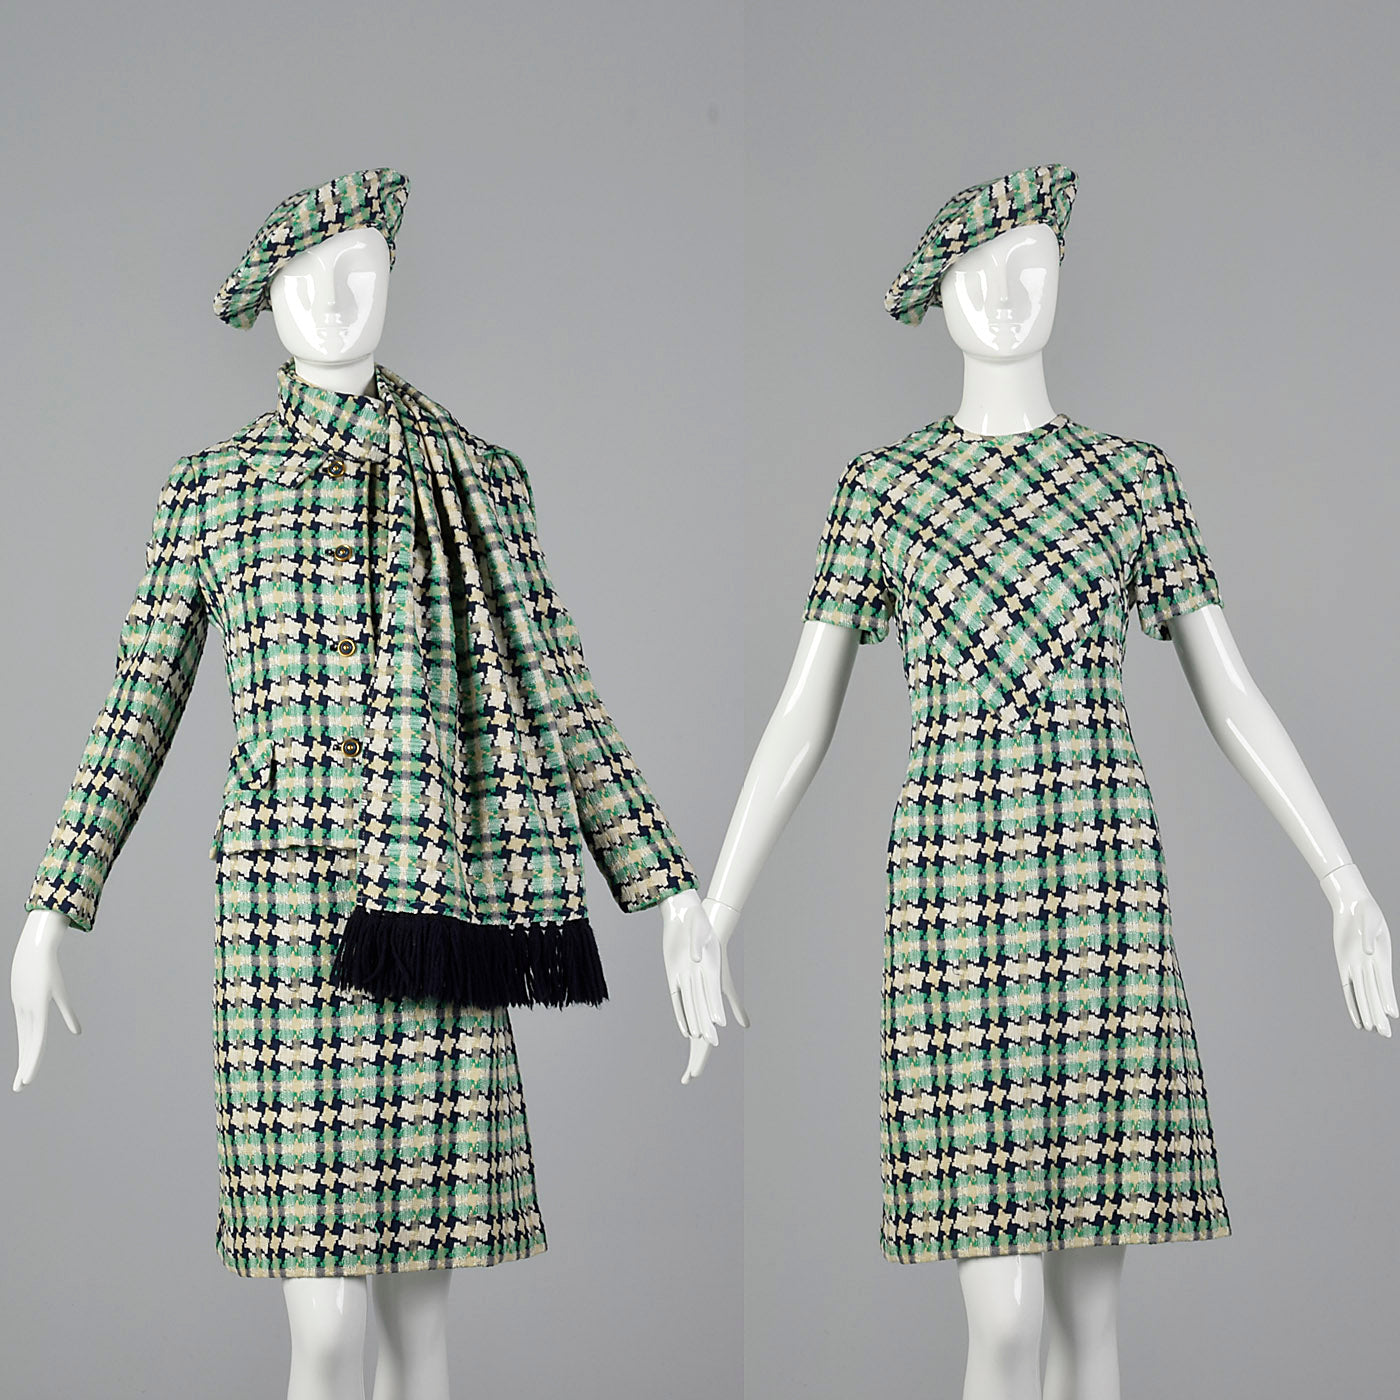 1960s I. Magnin Tweed Dress with Matching Jacket, Scarf, and Beret